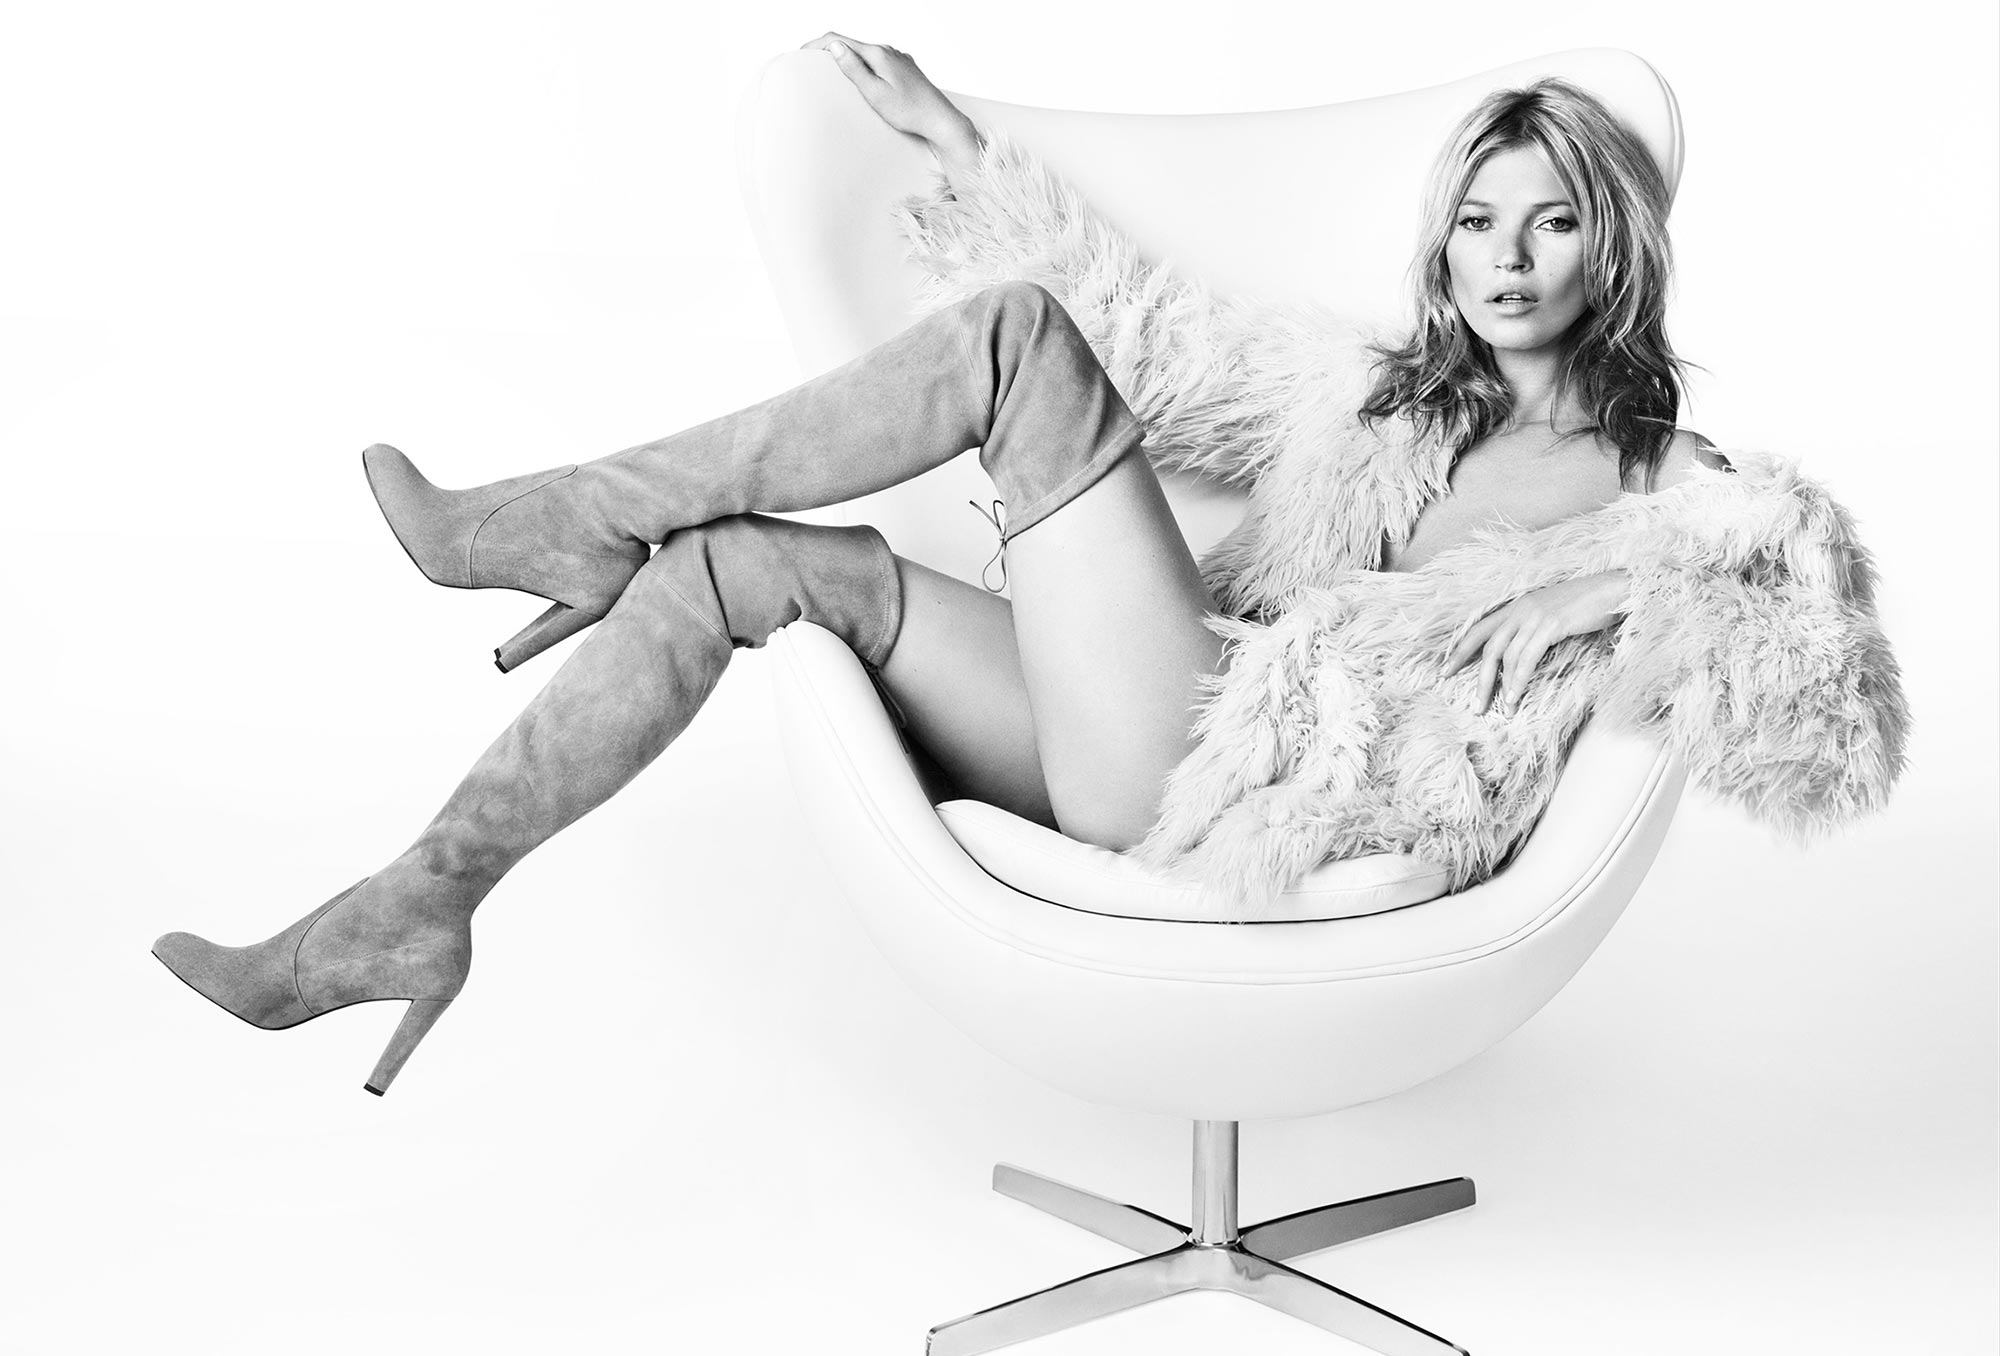 Art Direction of model Kate Moss for Shoe Brand Stuart Weitzman